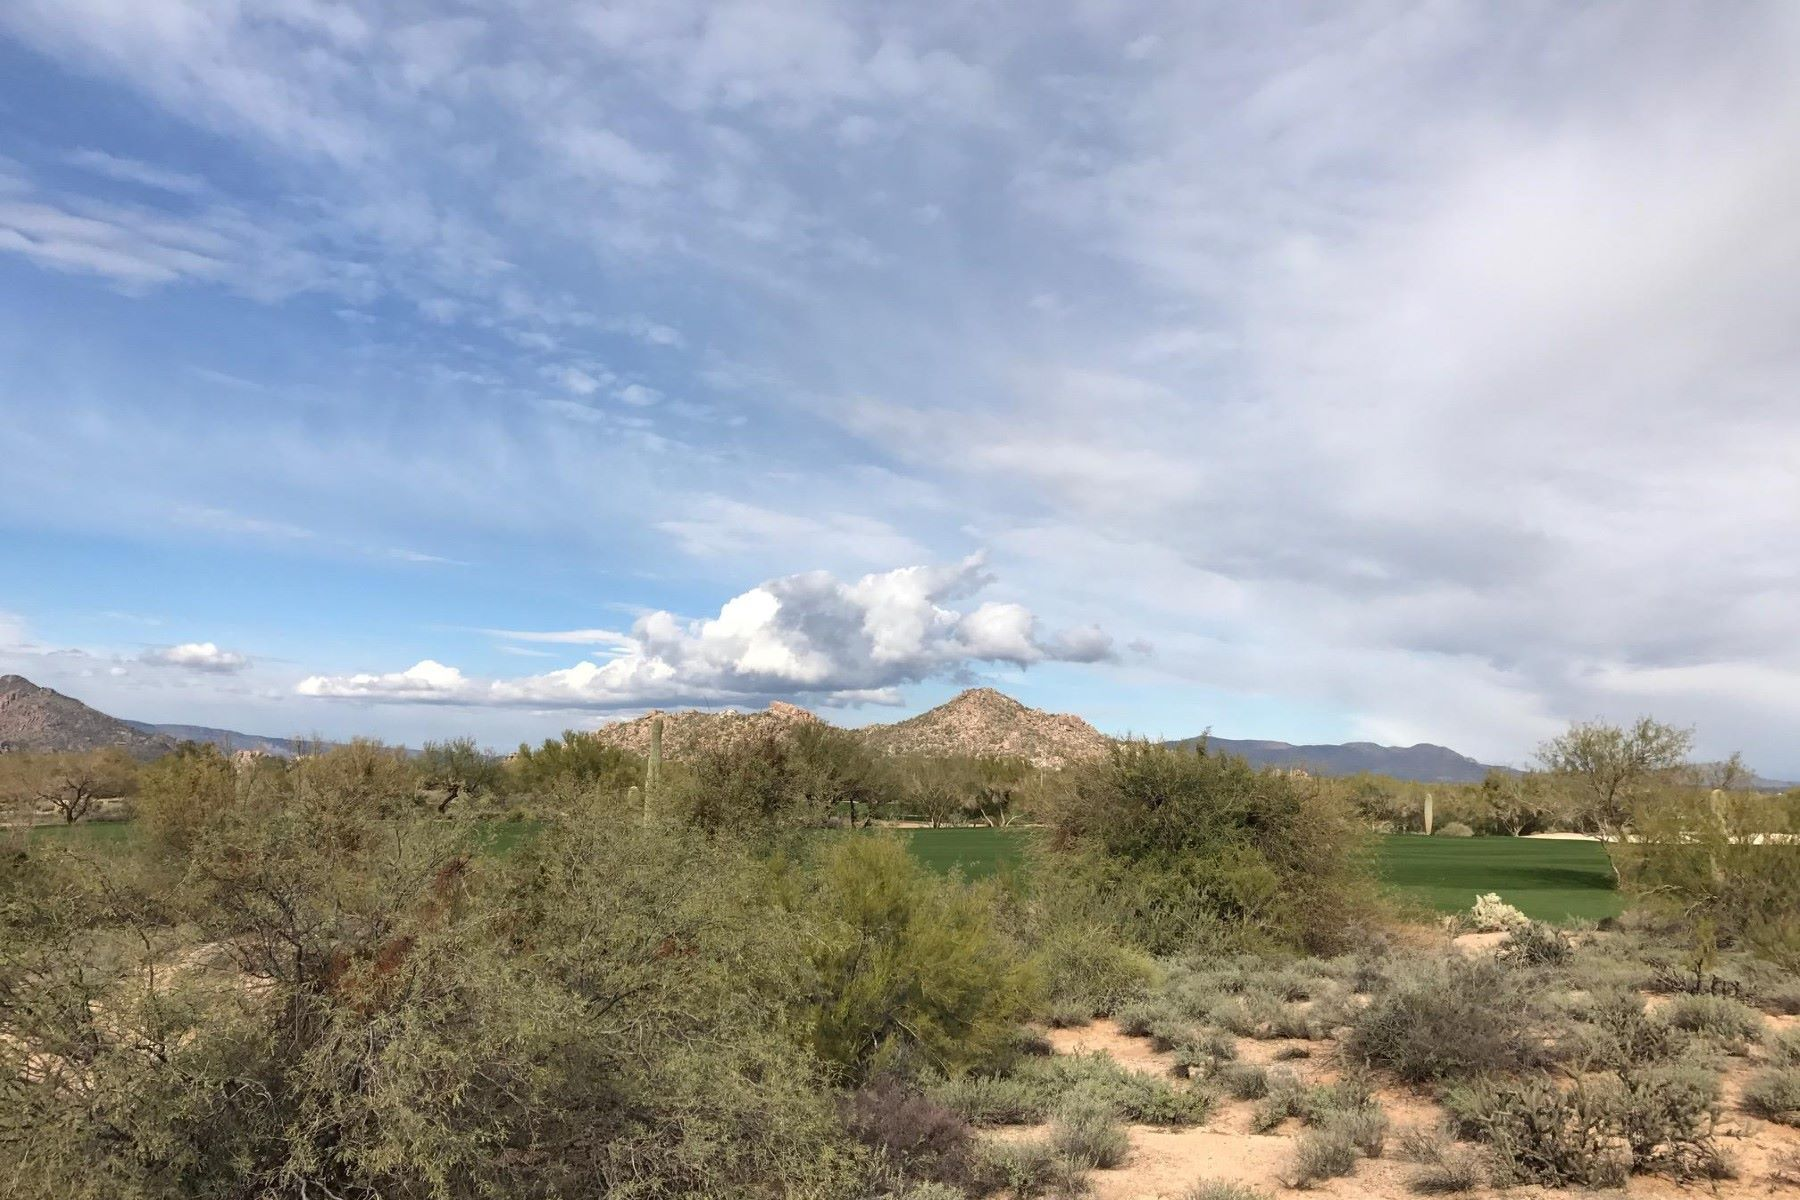 Terreno por un Venta en Beautiful lot on the golf course in Whisper Rock 7618 E Whisper Rock Trl #50 Scottsdale, Arizona, 85266 Estados Unidos